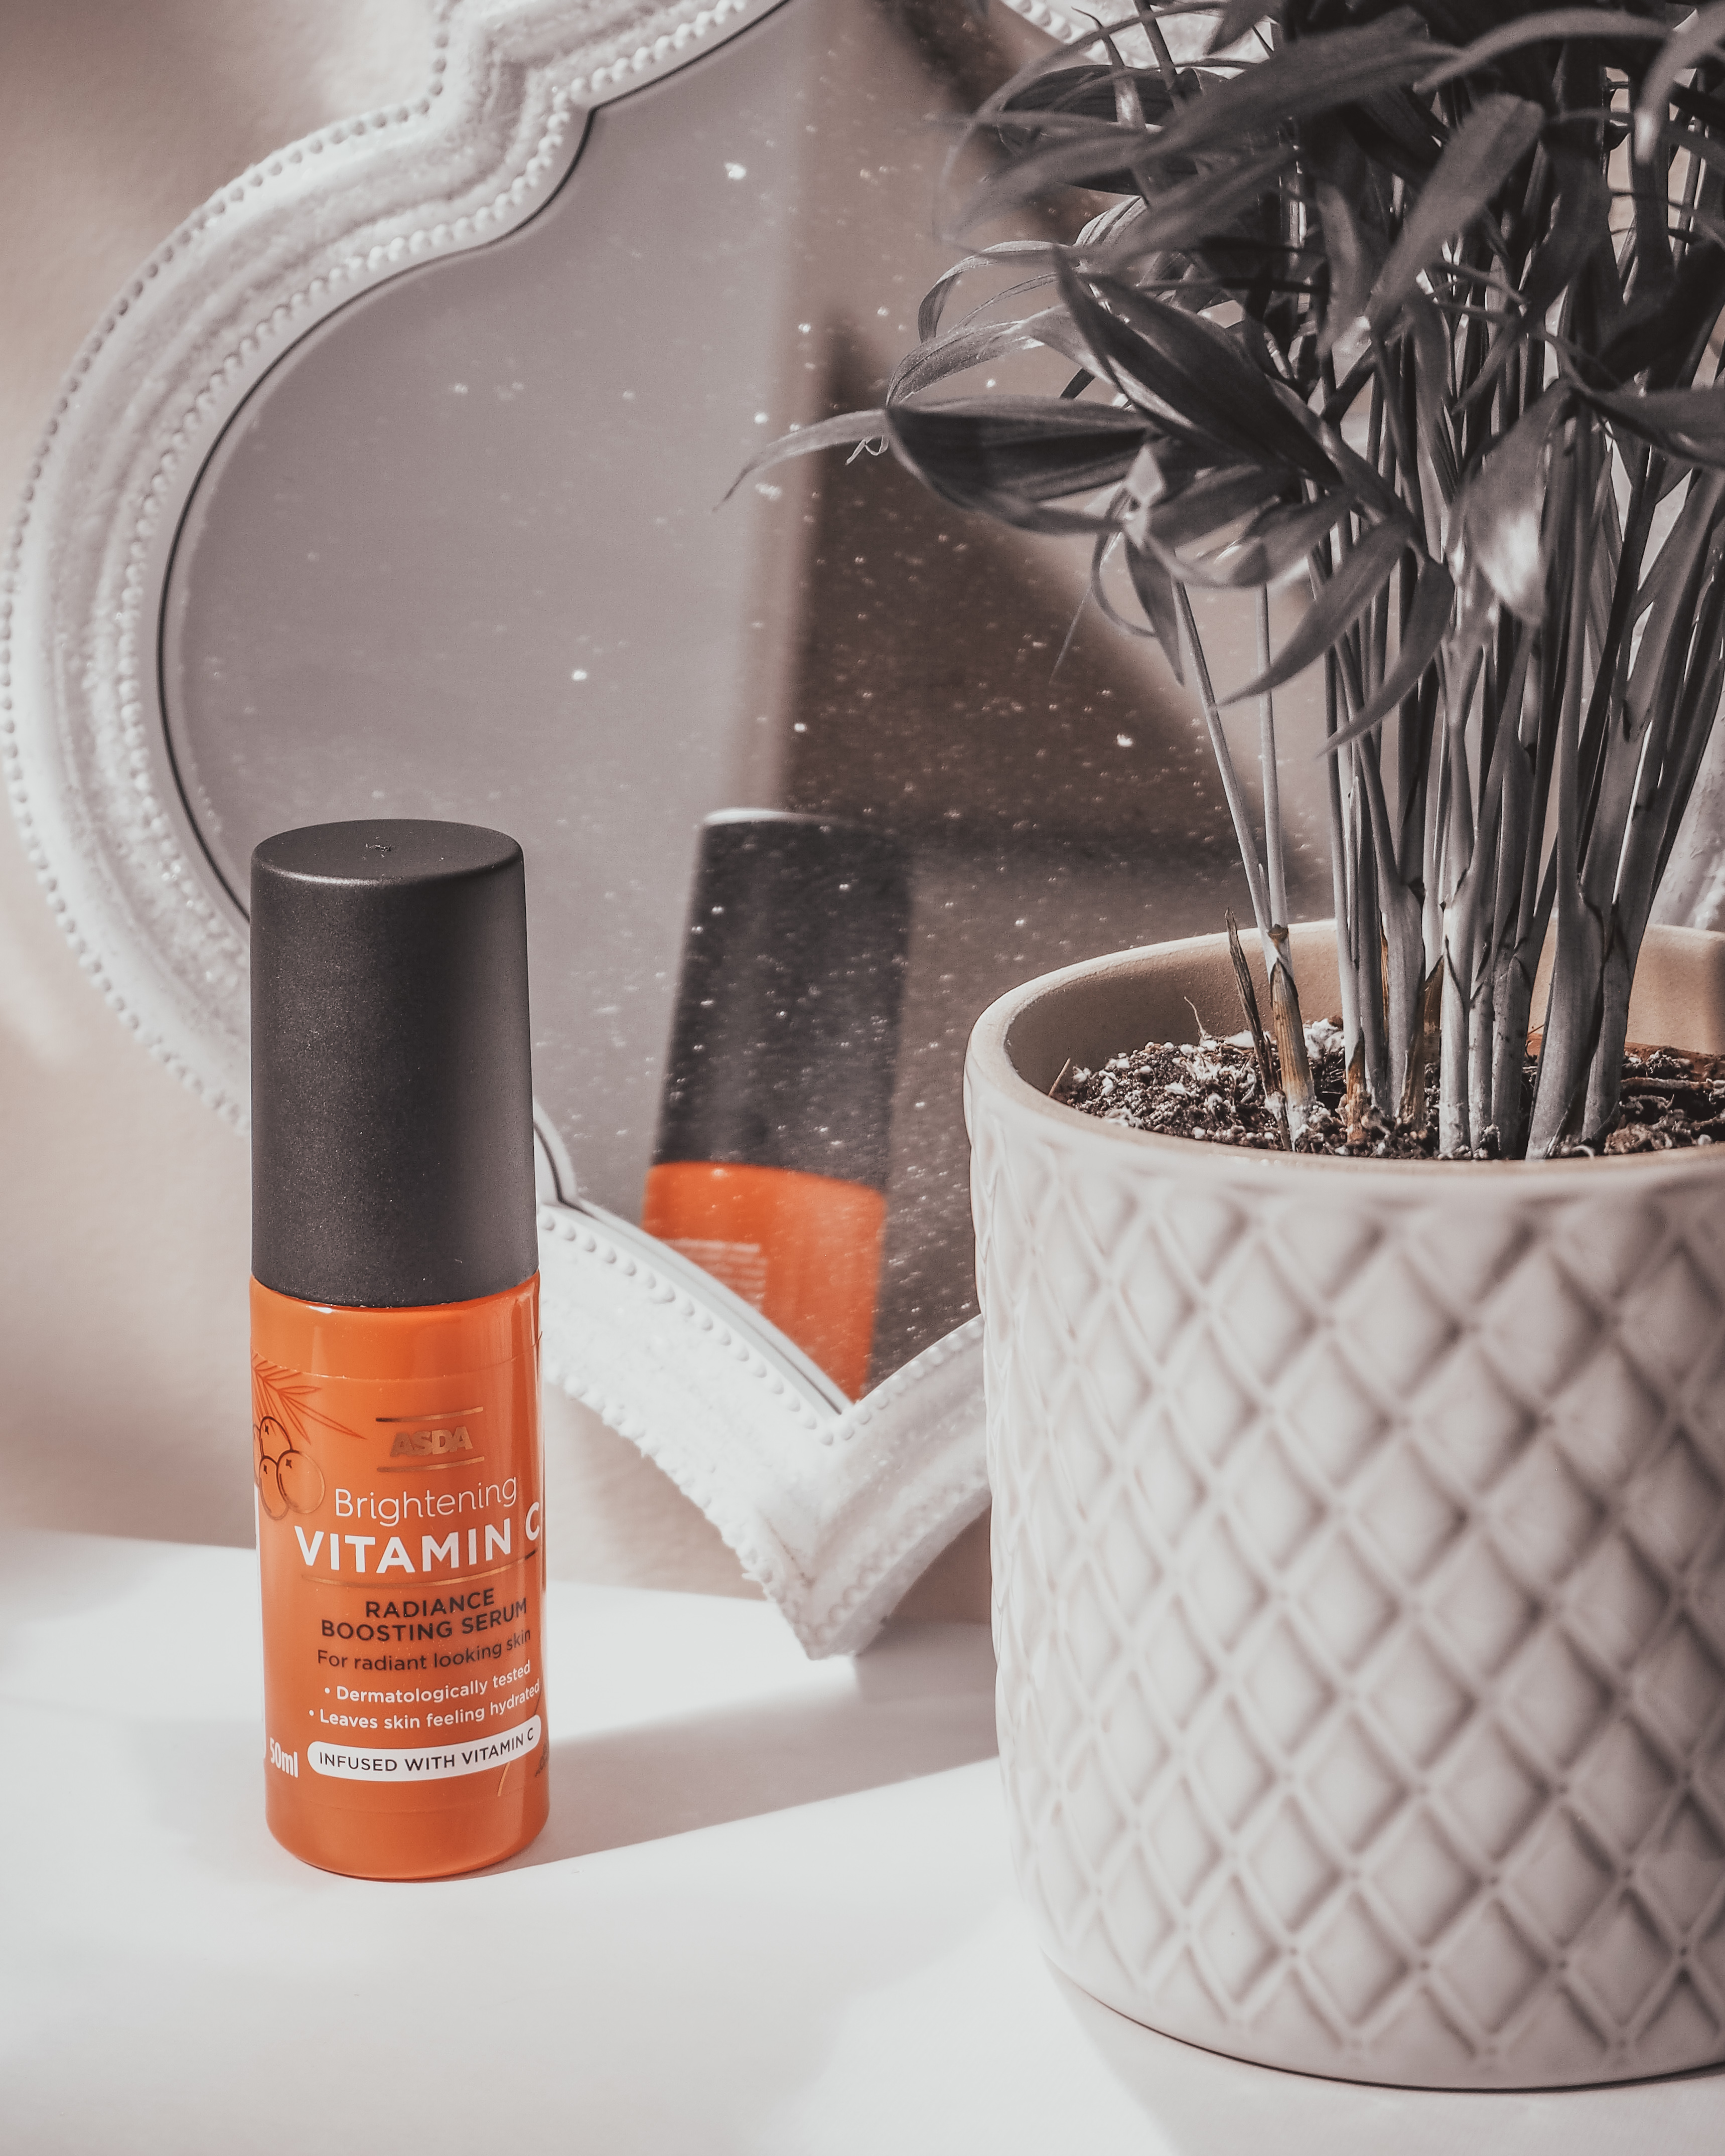 Asda Vitamin C Radiance Boosting Serum